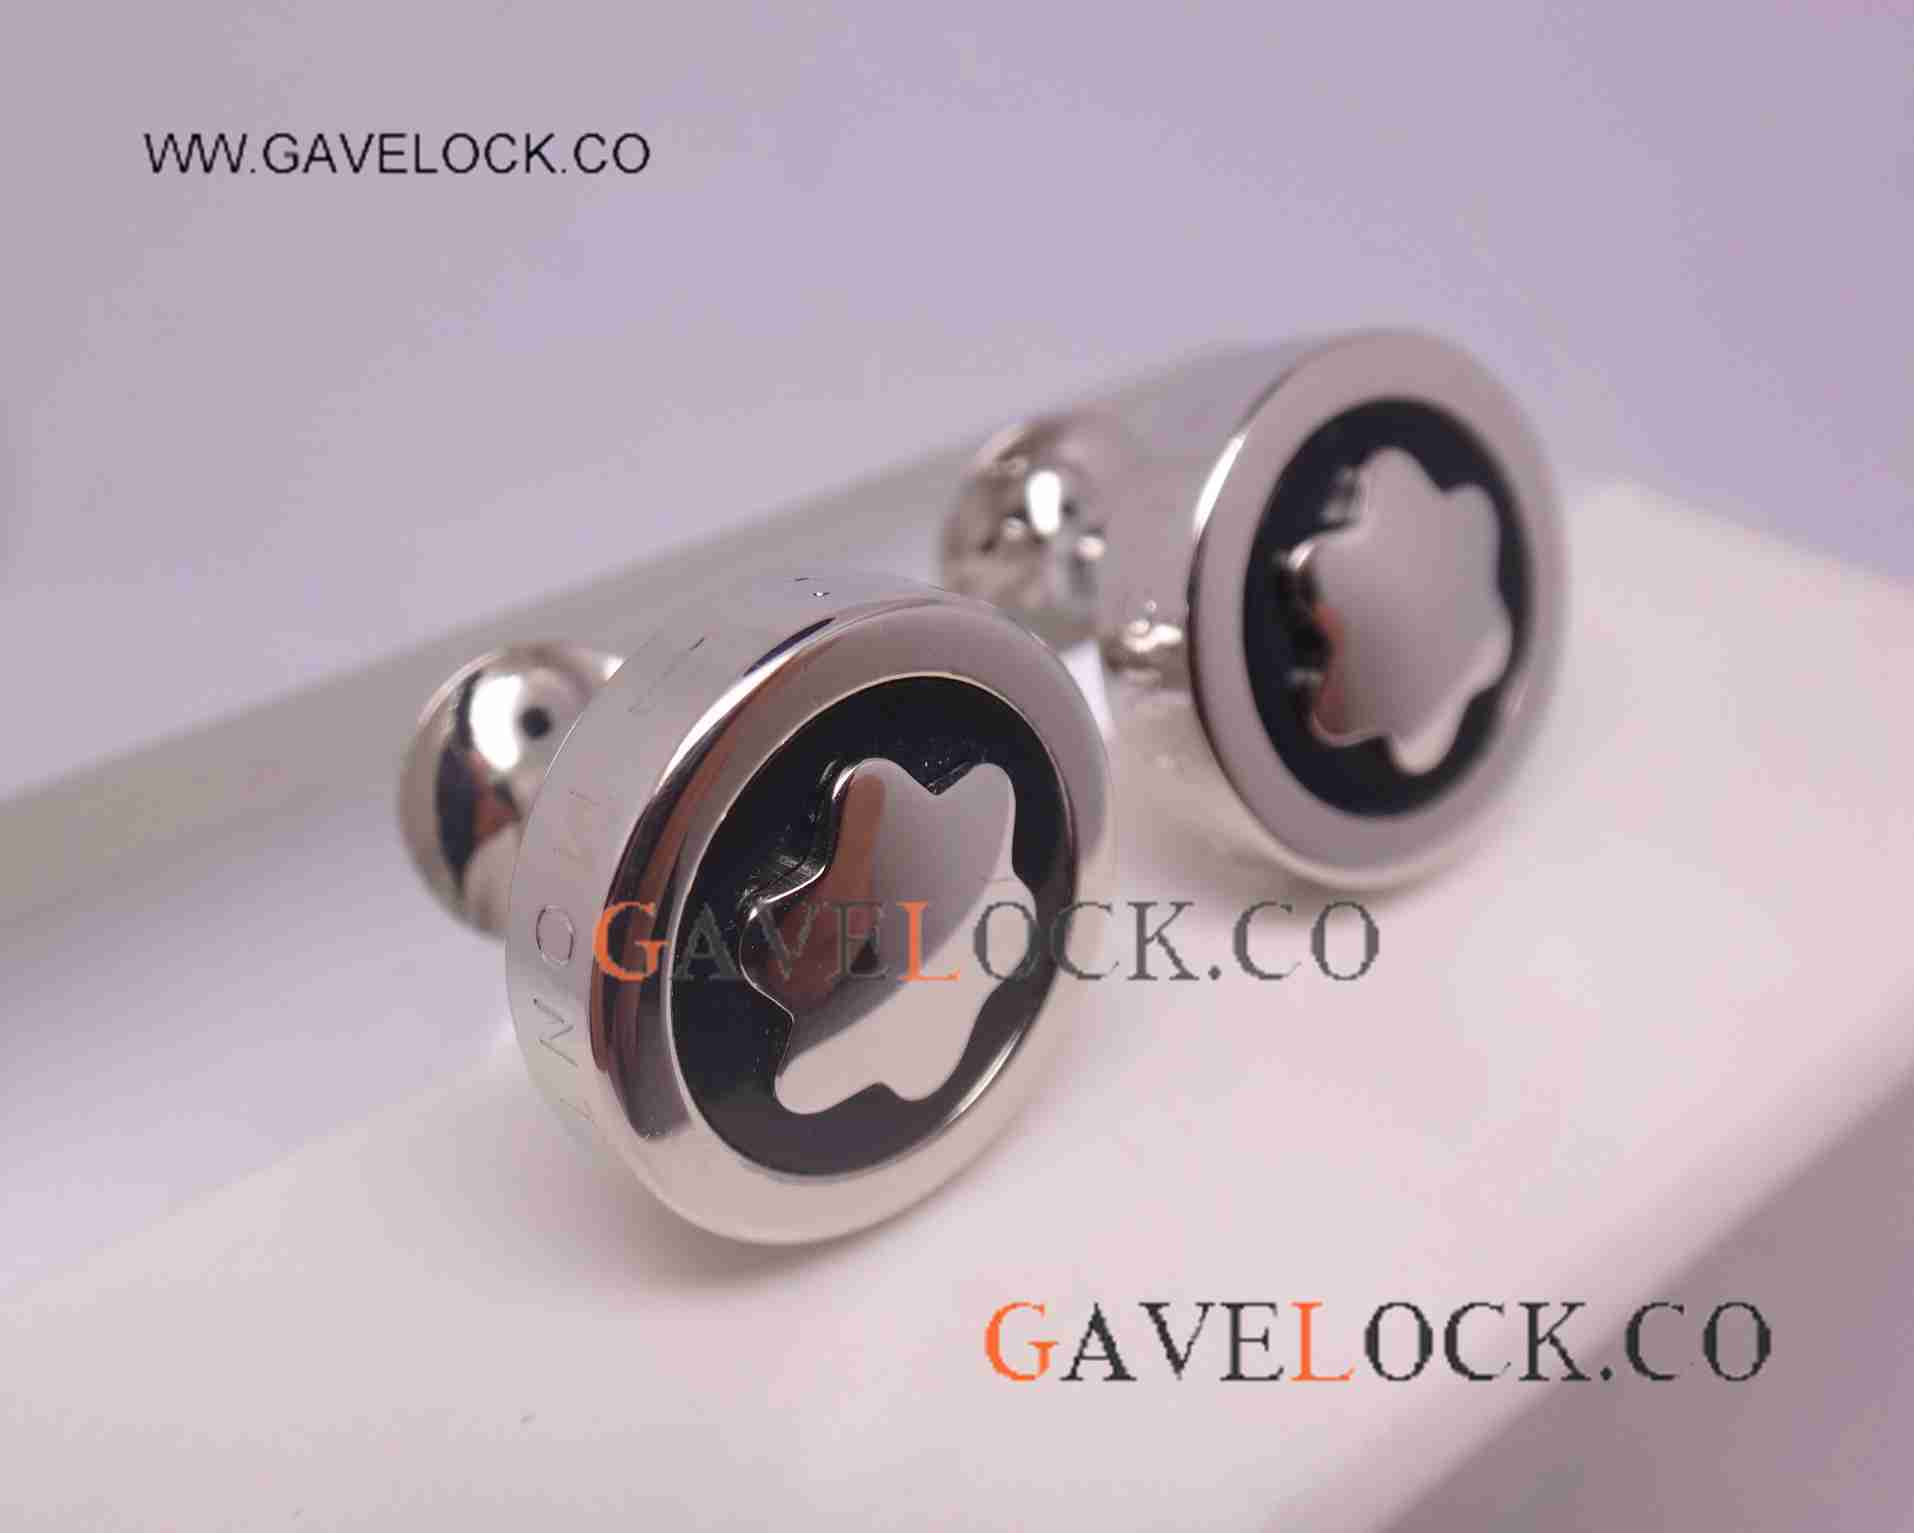 AAA Grade - Hot Sale - Replica Mont blanc Cufflinks Hot Sale